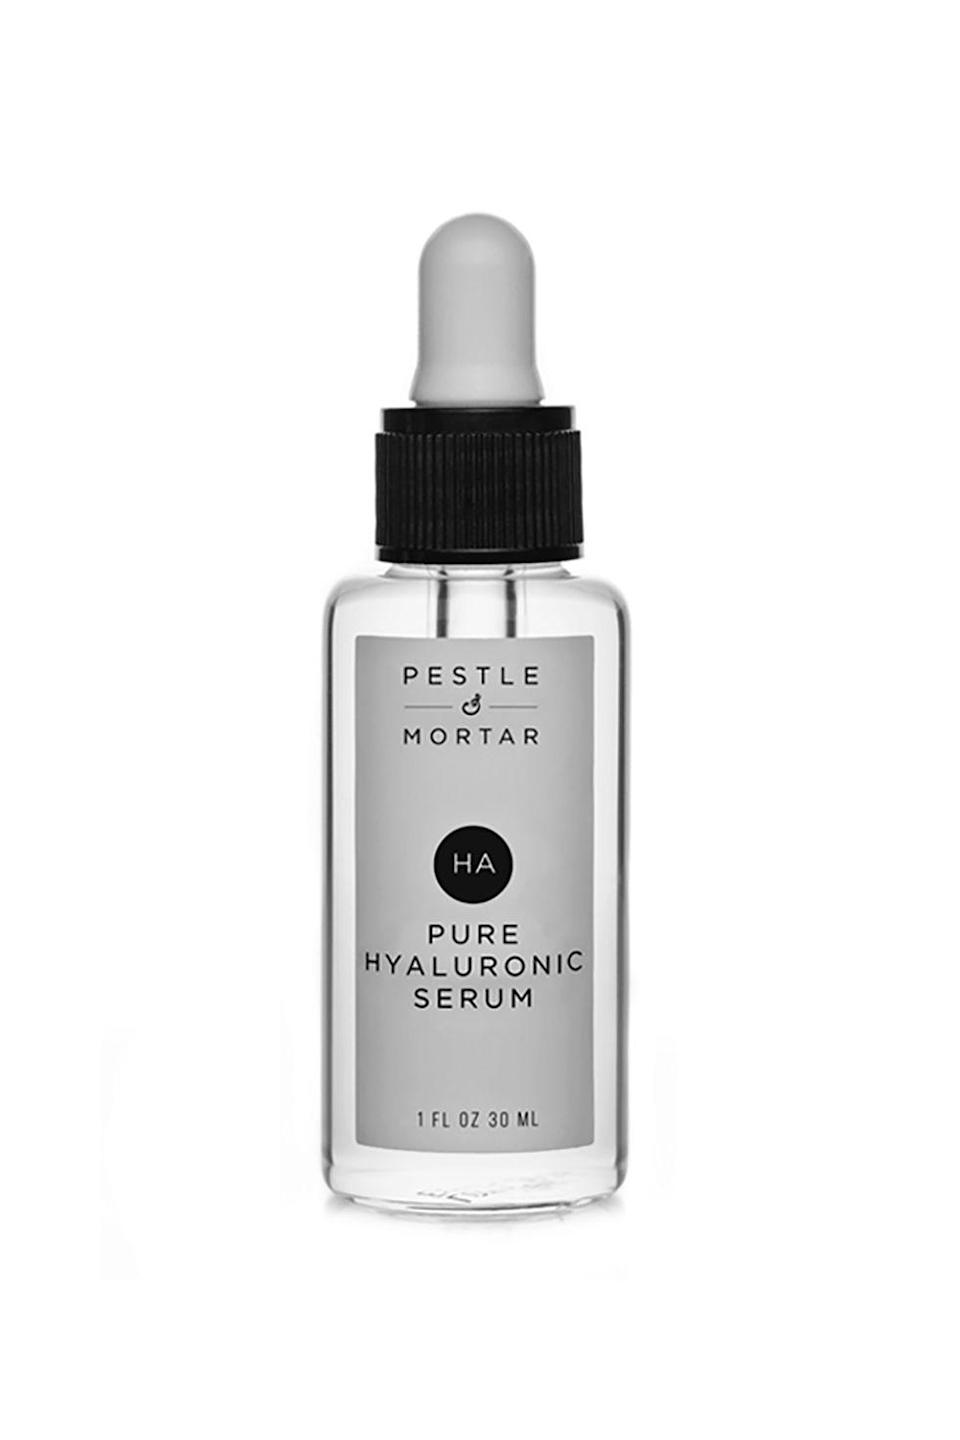 "<p>Just think about it: What *would* happen if you put a bunch of the top moisturizing ingredients out there on your face? Miracles, that's what. </p><p>$69, <a href=""http://www.pestleandmortar.com/us/product/hyaluronic-acid-serum/"" rel=""nofollow noopener"" target=""_blank"" data-ylk=""slk:pestleandmortar.com"" class=""link rapid-noclick-resp"">pestleandmortar.com</a>.</p>"